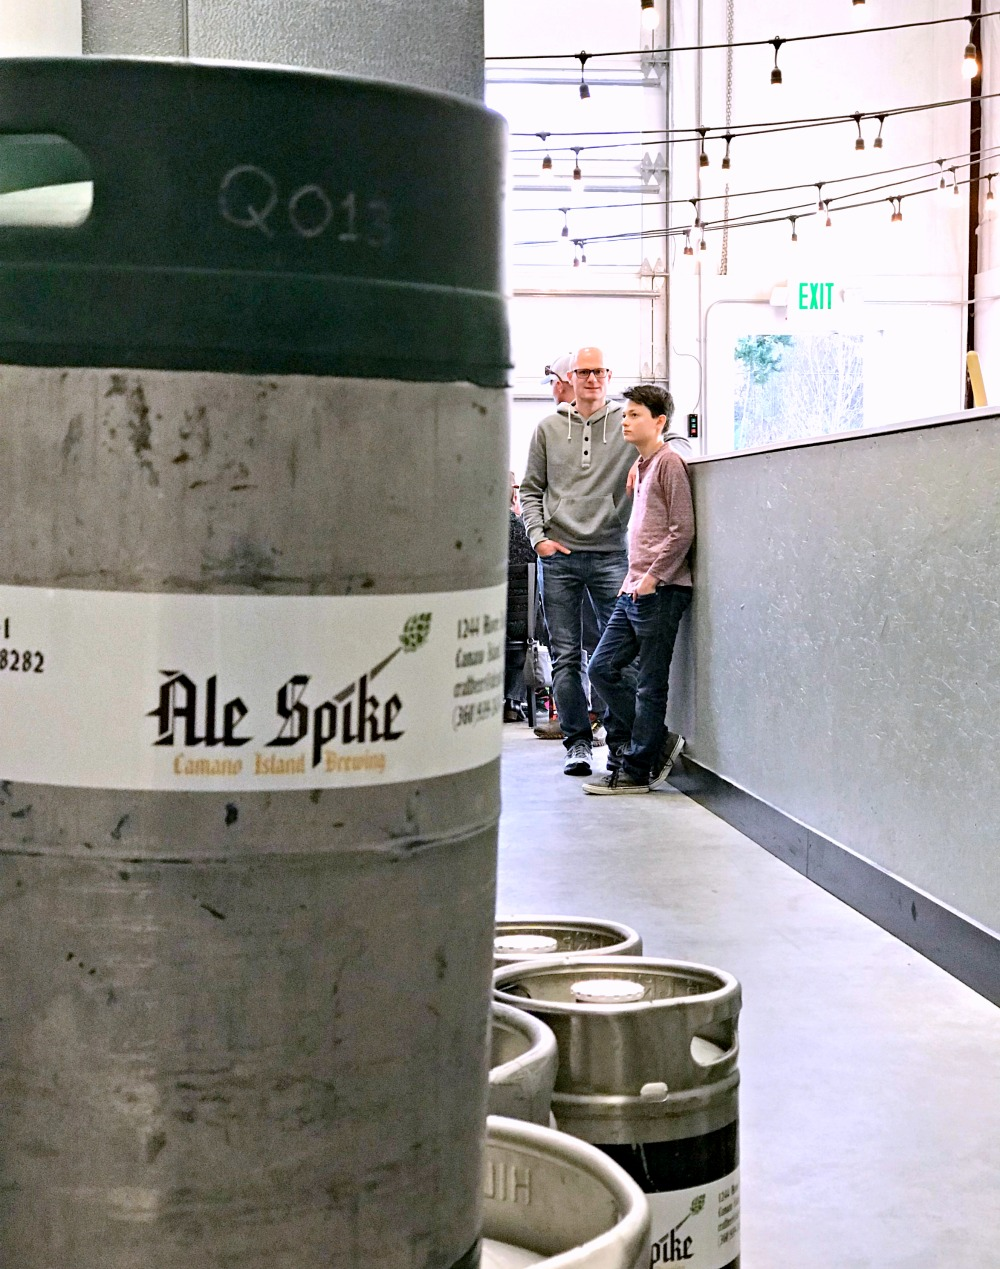 Ale Spike Camano Island brewing